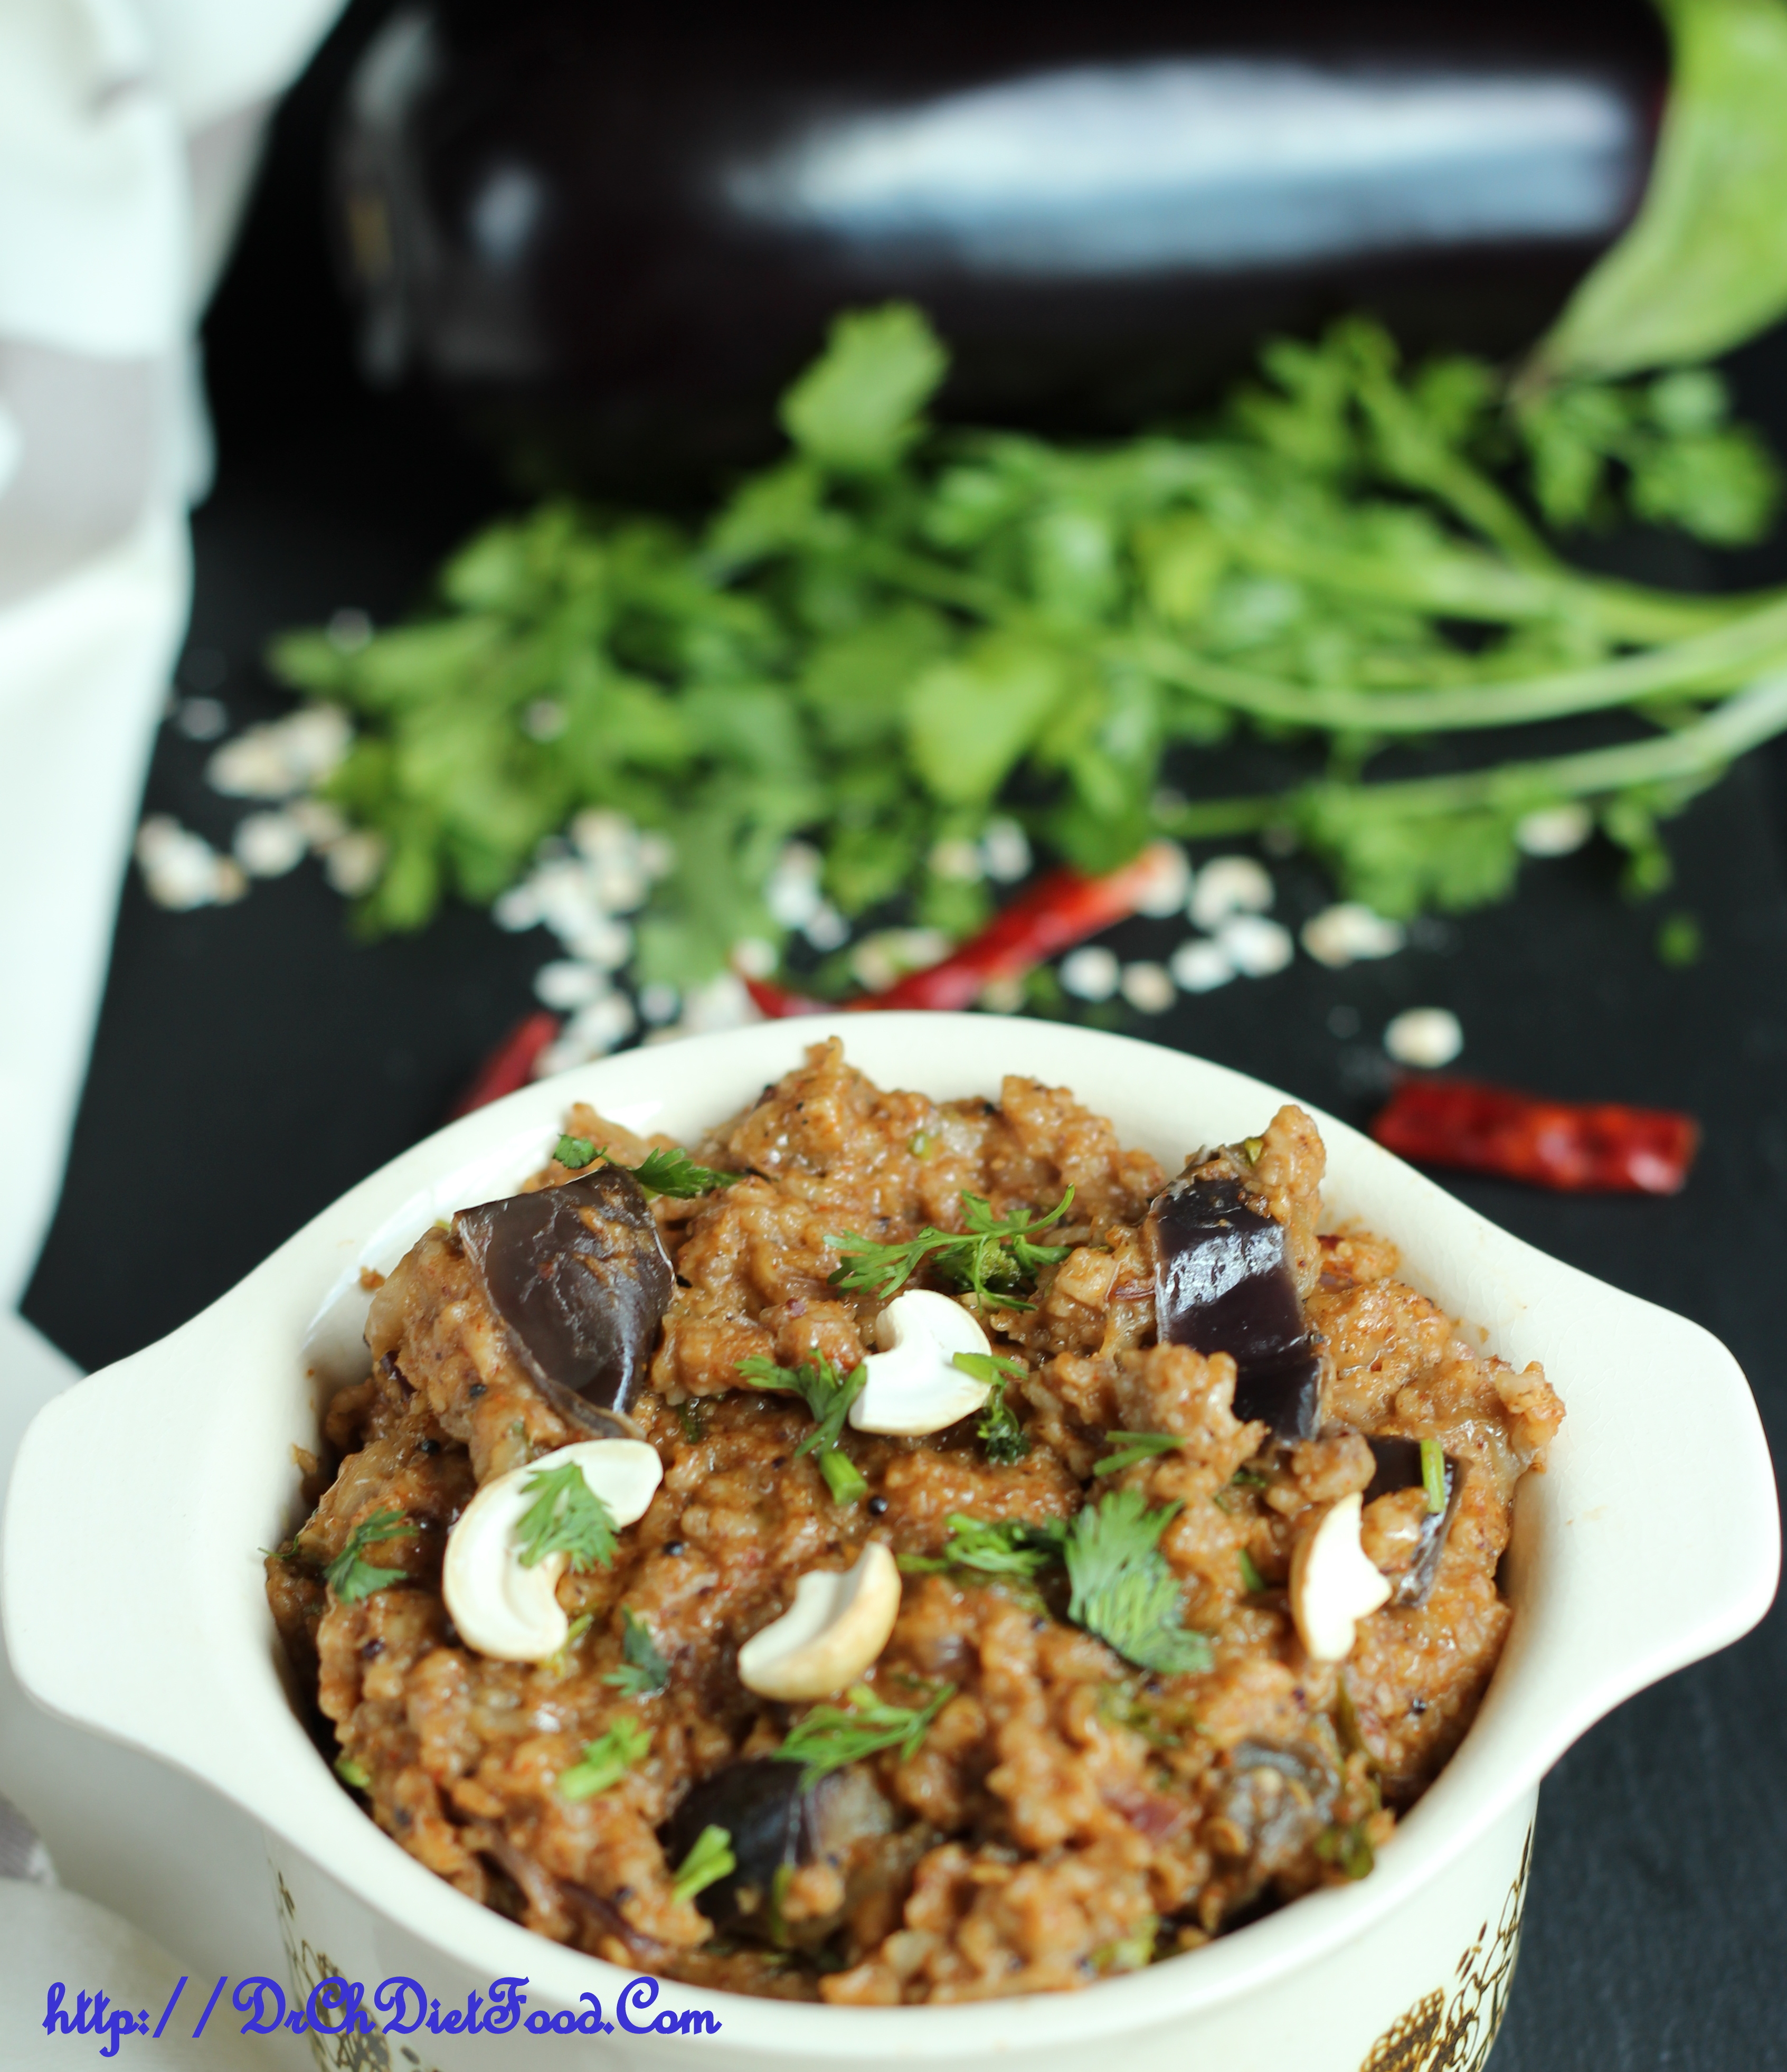 Oats and Aubergine – Savoury Porridge/Vangibath